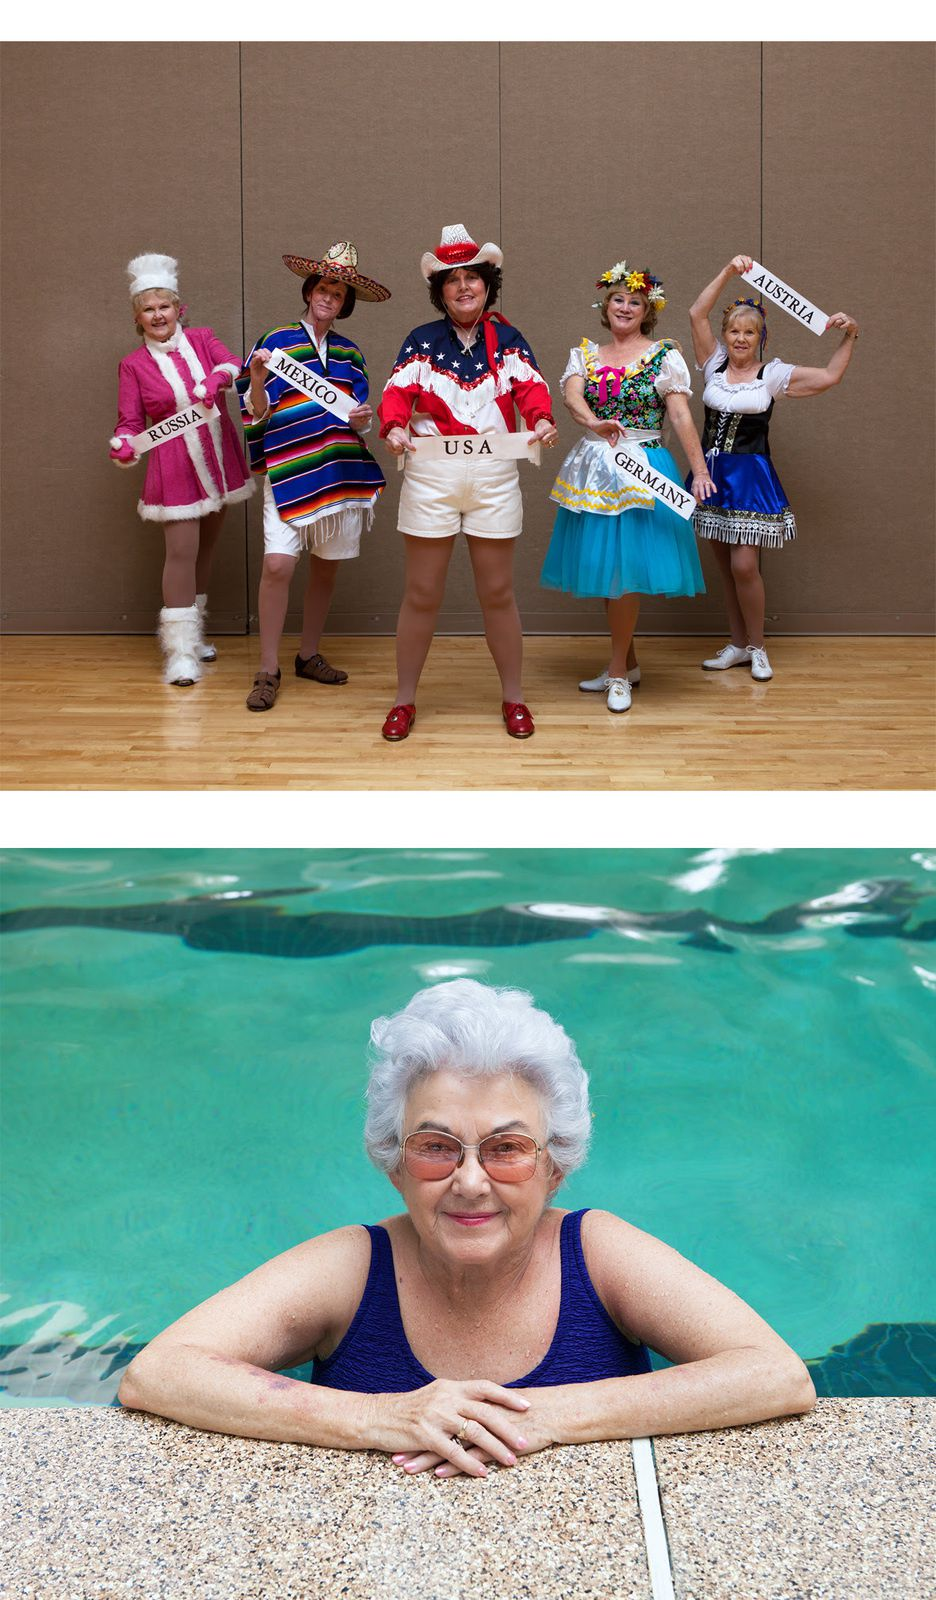 © Marion Gambin - «Les Rythms Tappers de Sun City West, Arizona, USA, 2013» - Benita Mc Ginn (81 ans) à la piscine du Beardsley recreation center, Arizona, USA, 2013